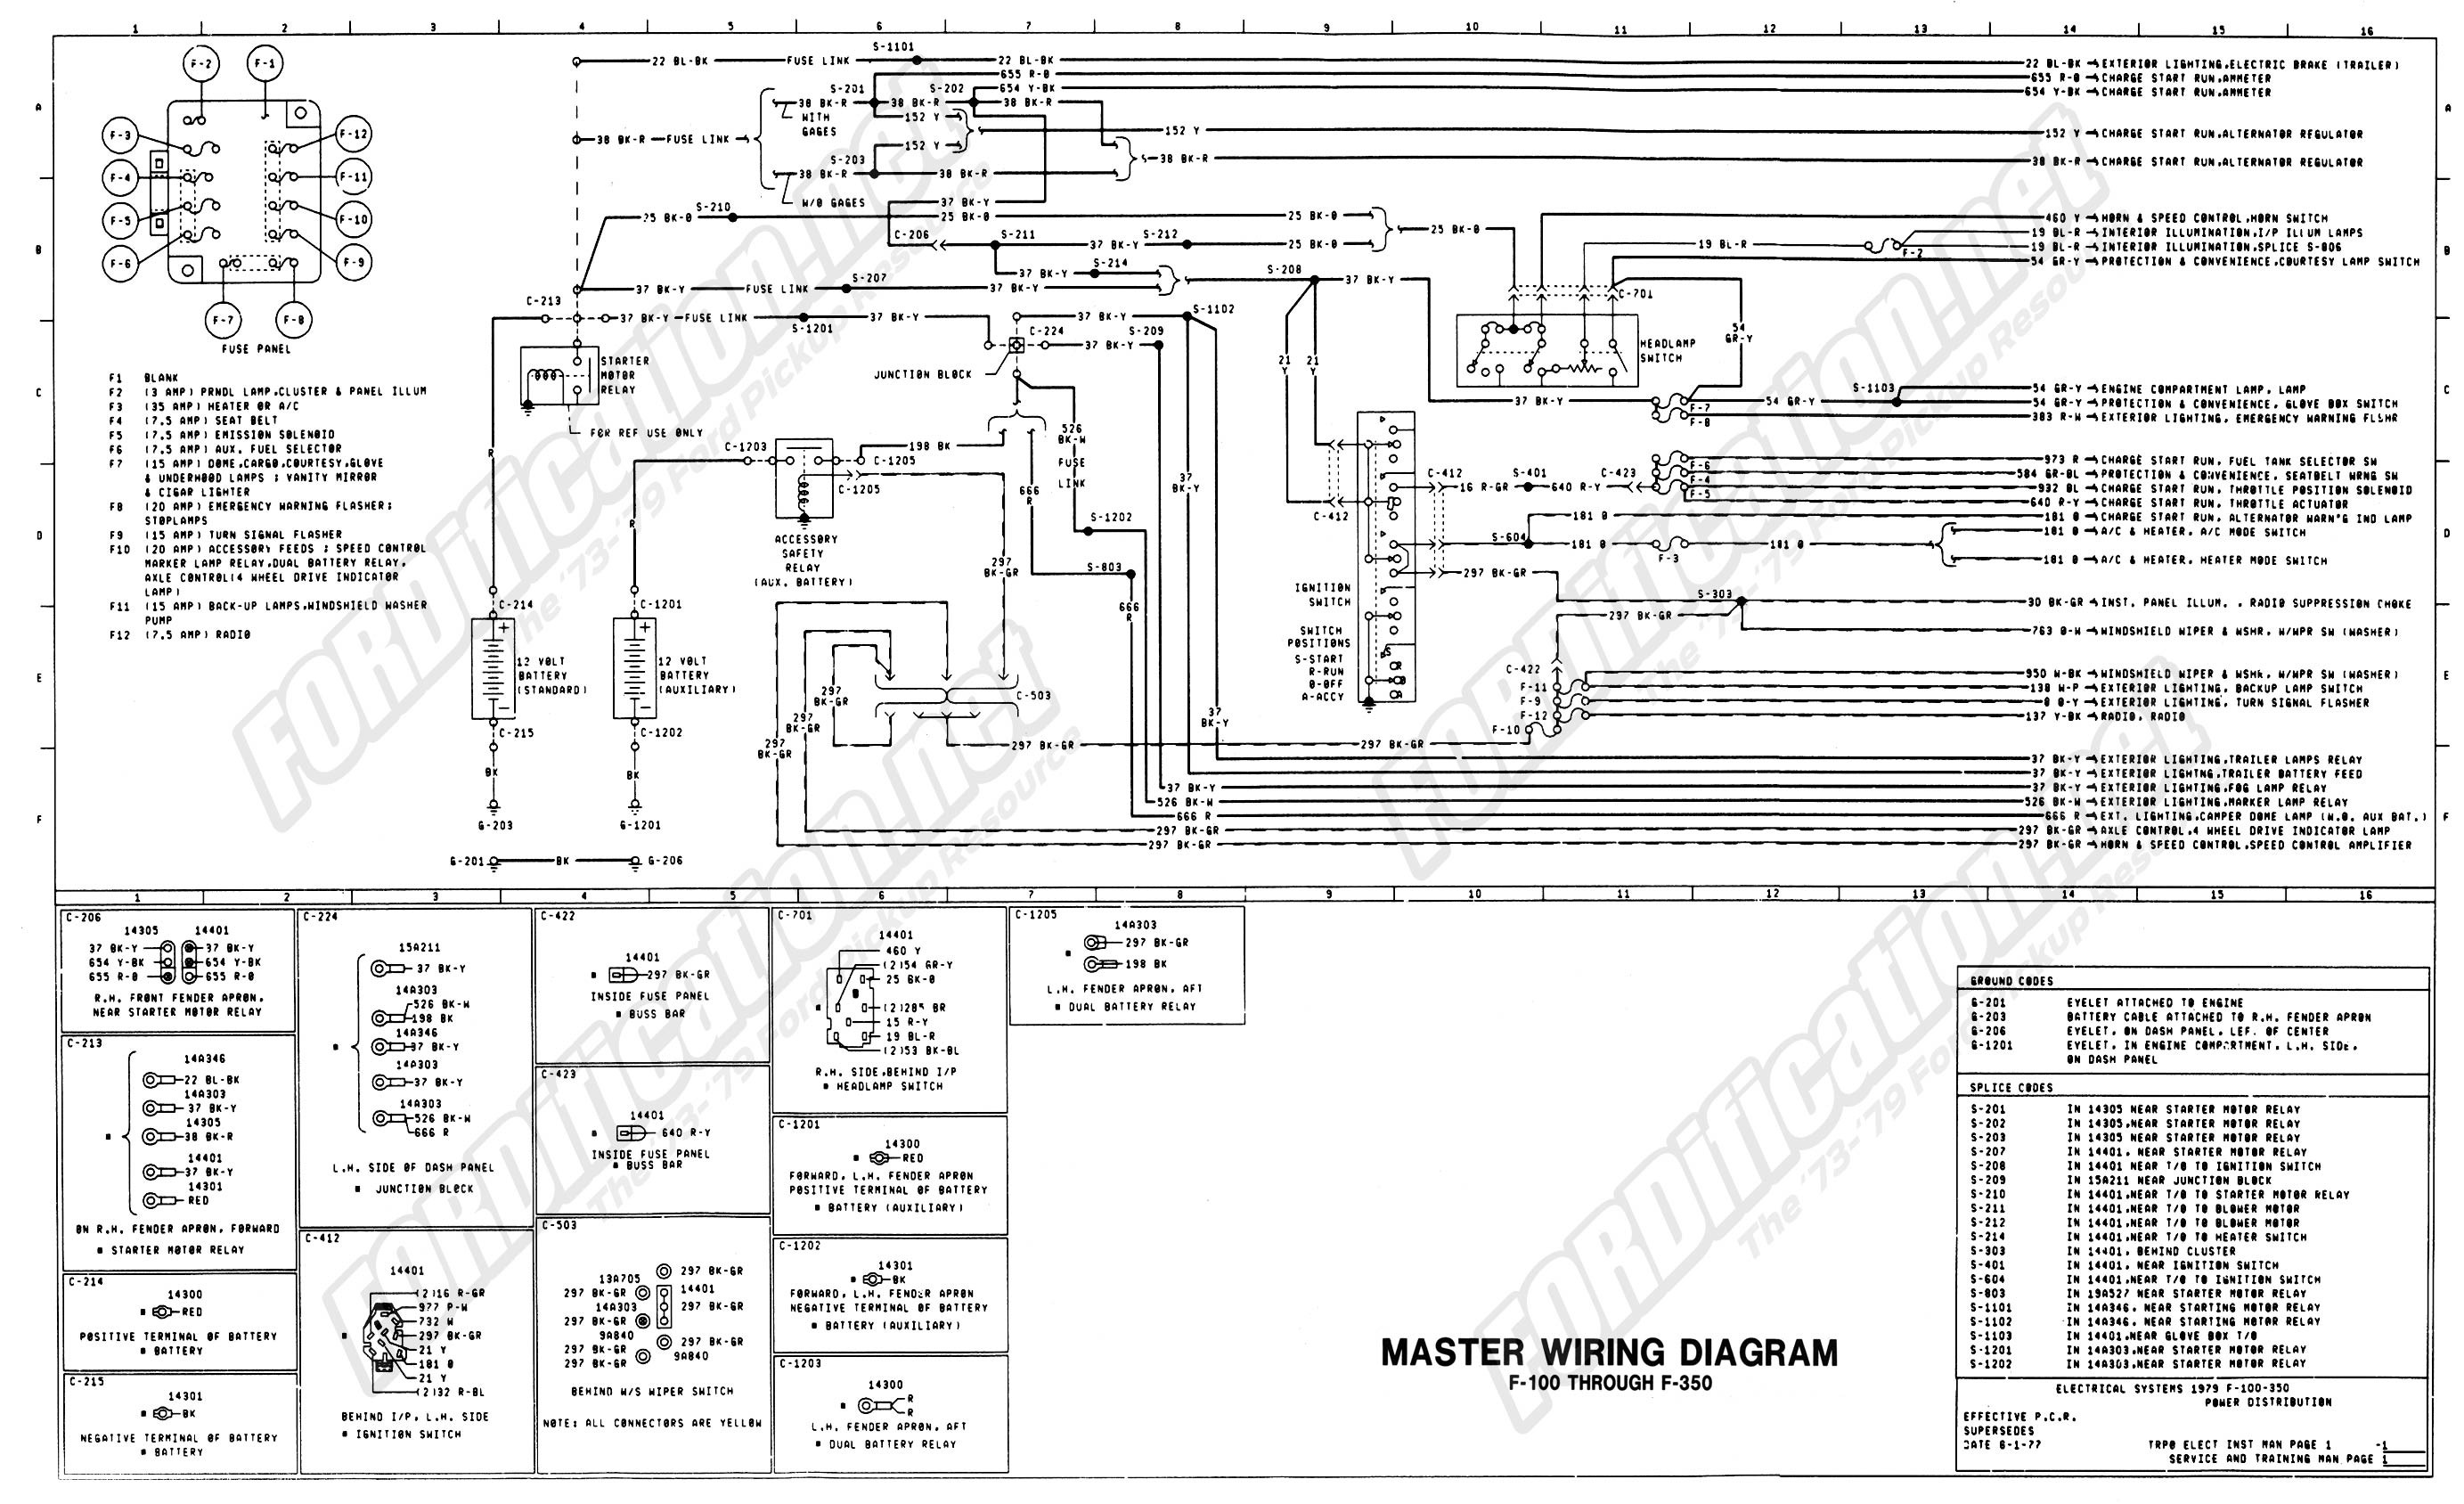 Ford Torino Wiring Diagram Furthermore 1969 Ford Torino Wiring